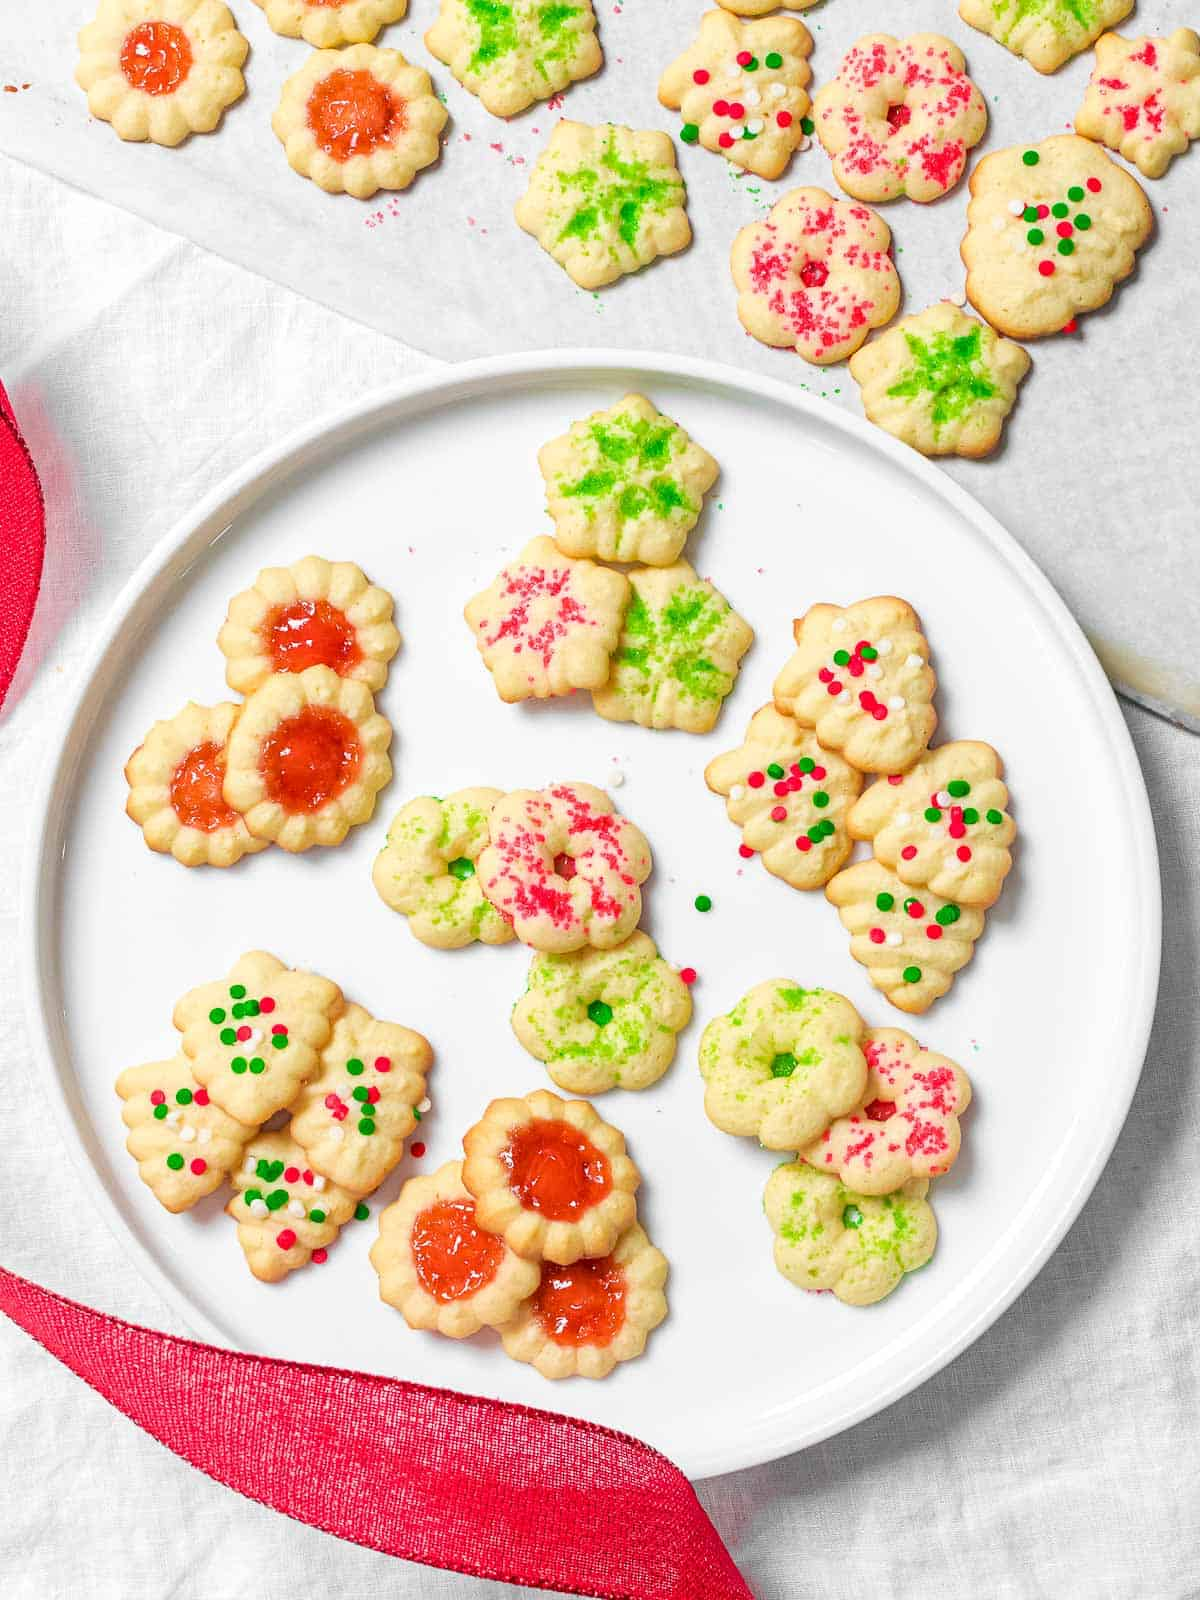 Christmas cookie press cookies decorated with red and green Christmas sprinkles on a white plate.